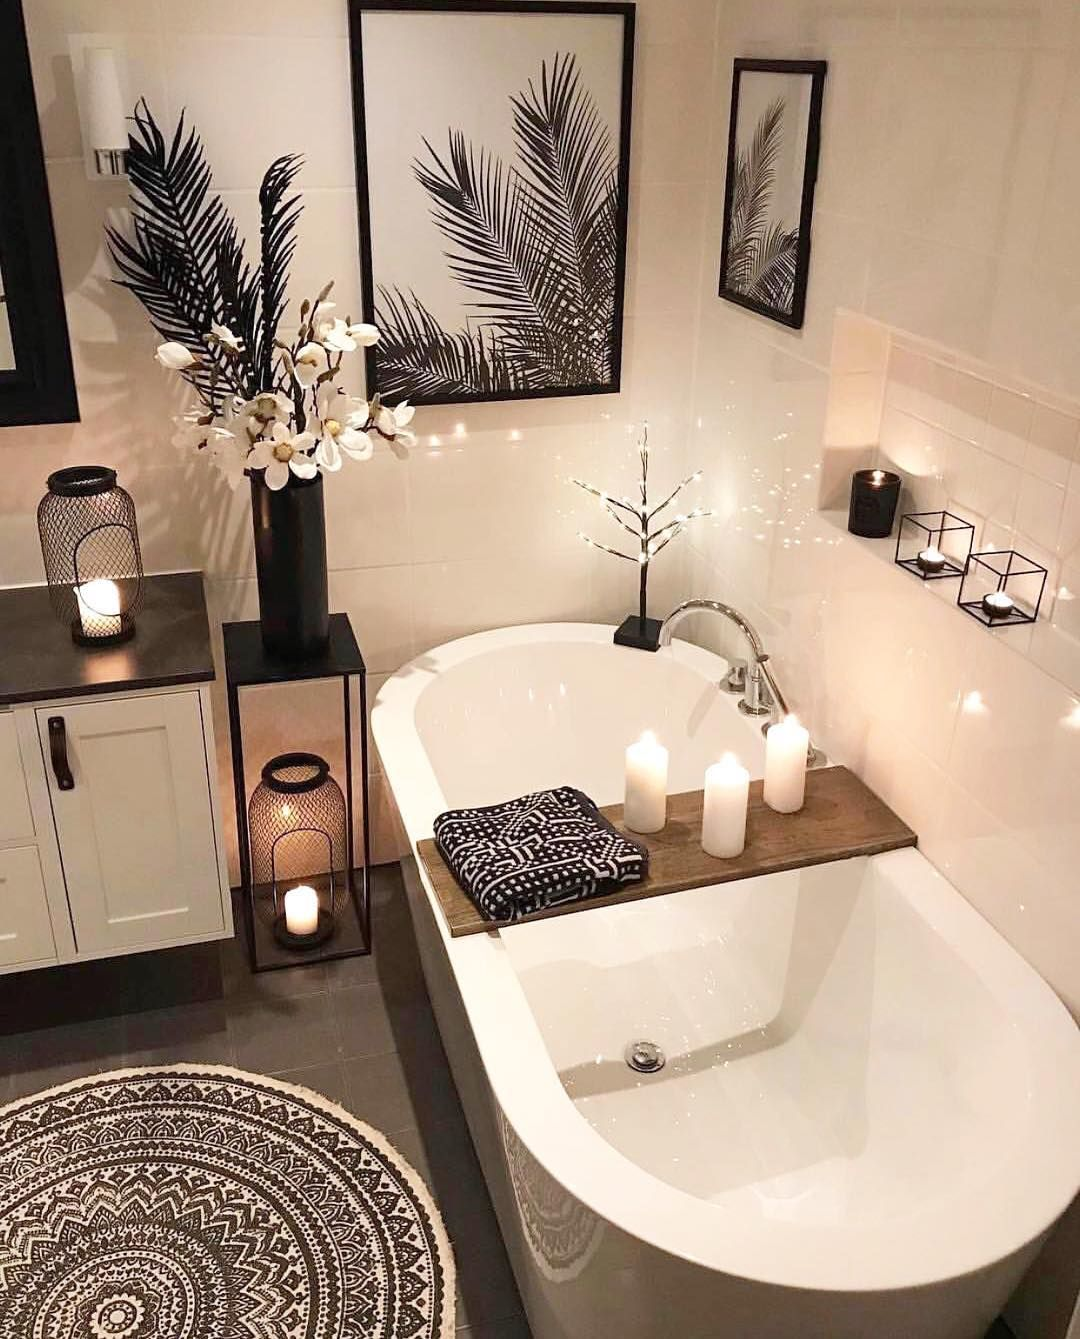 """28th & Harmony Designs on Instagram: """"Who would love to come home to this relaxing tub? 🙋🏾♀️ #bathroomgoals #homedesign #homedecor #prettylittleinteriors"""""""